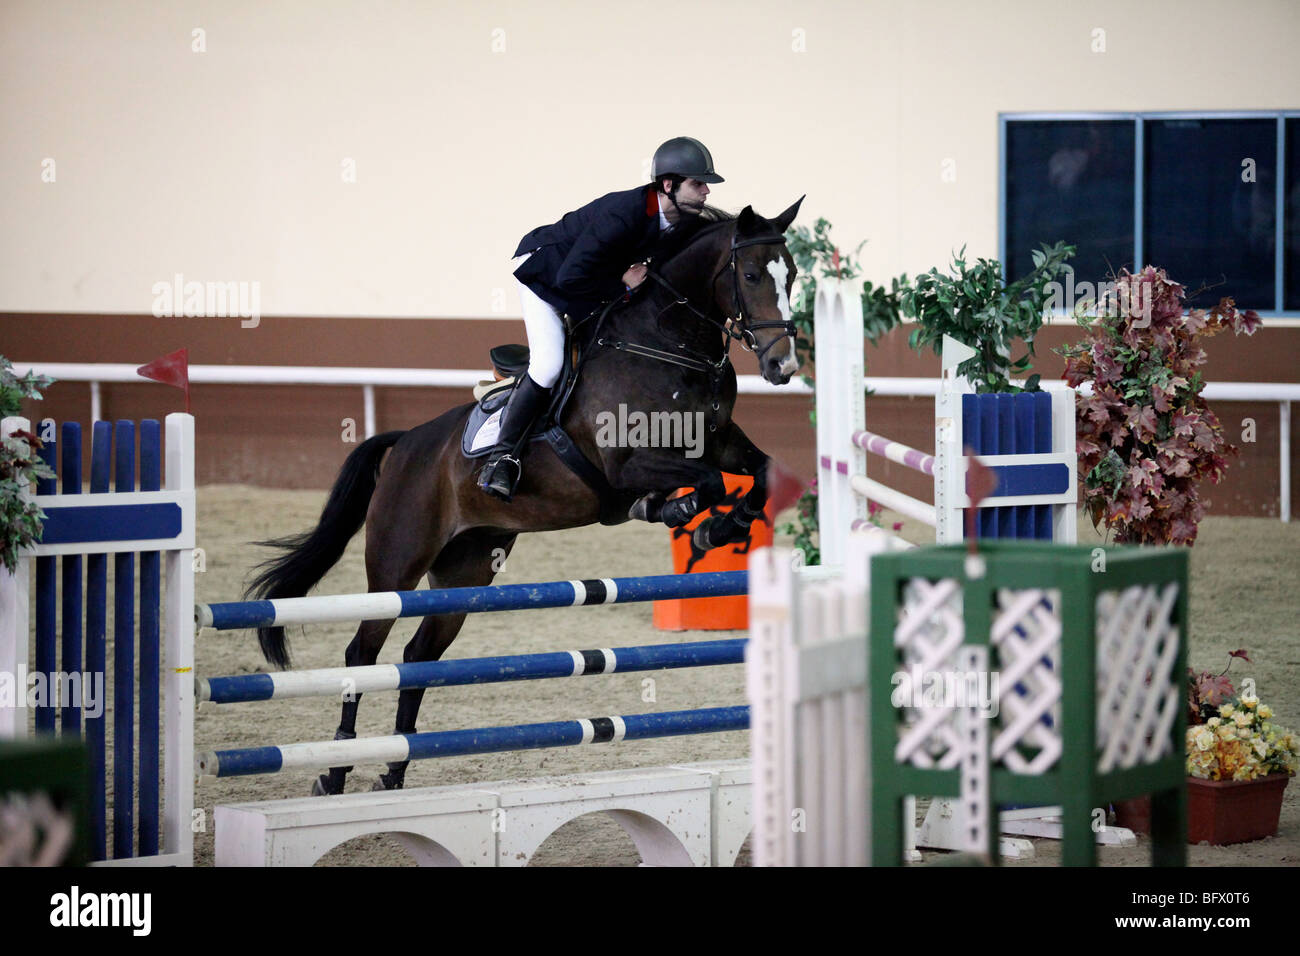 A competitor in a regional show-jumping event at the Qatar Equestrian Federation's indoor Arena in Doha - Stock Image